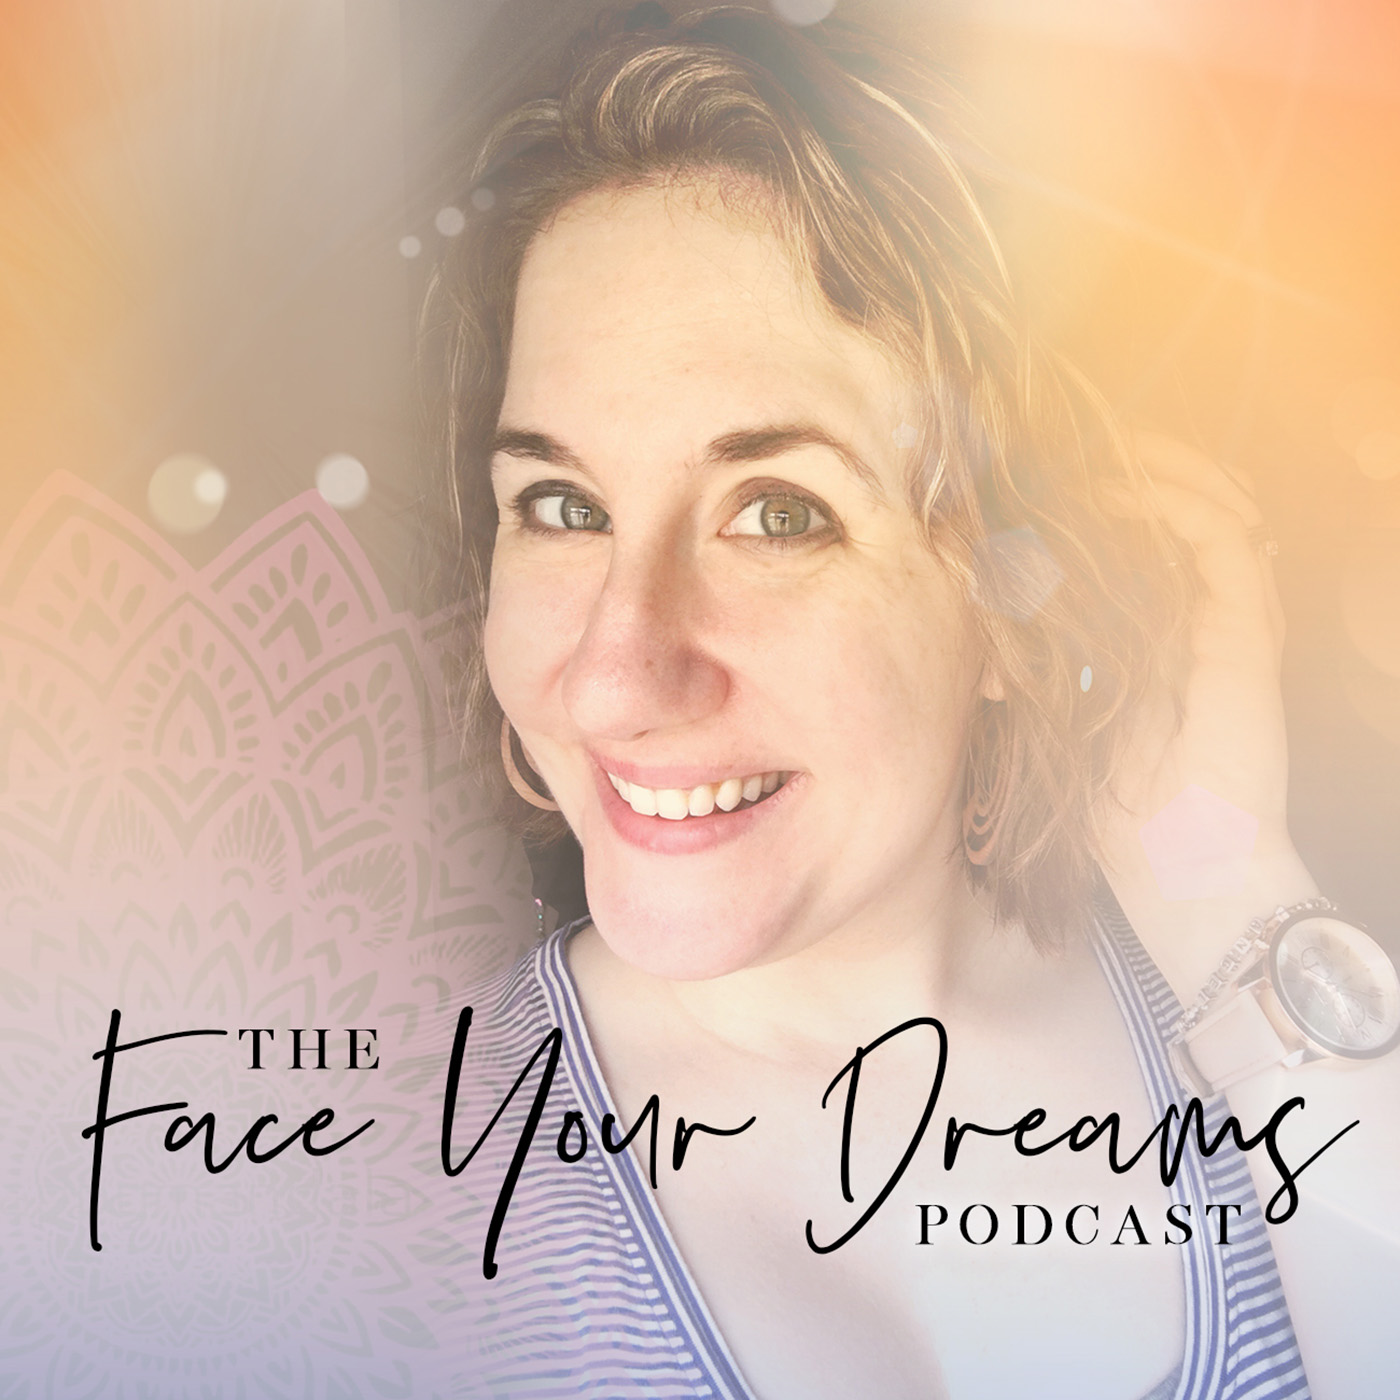 The Face Your Dreams Podcast show image